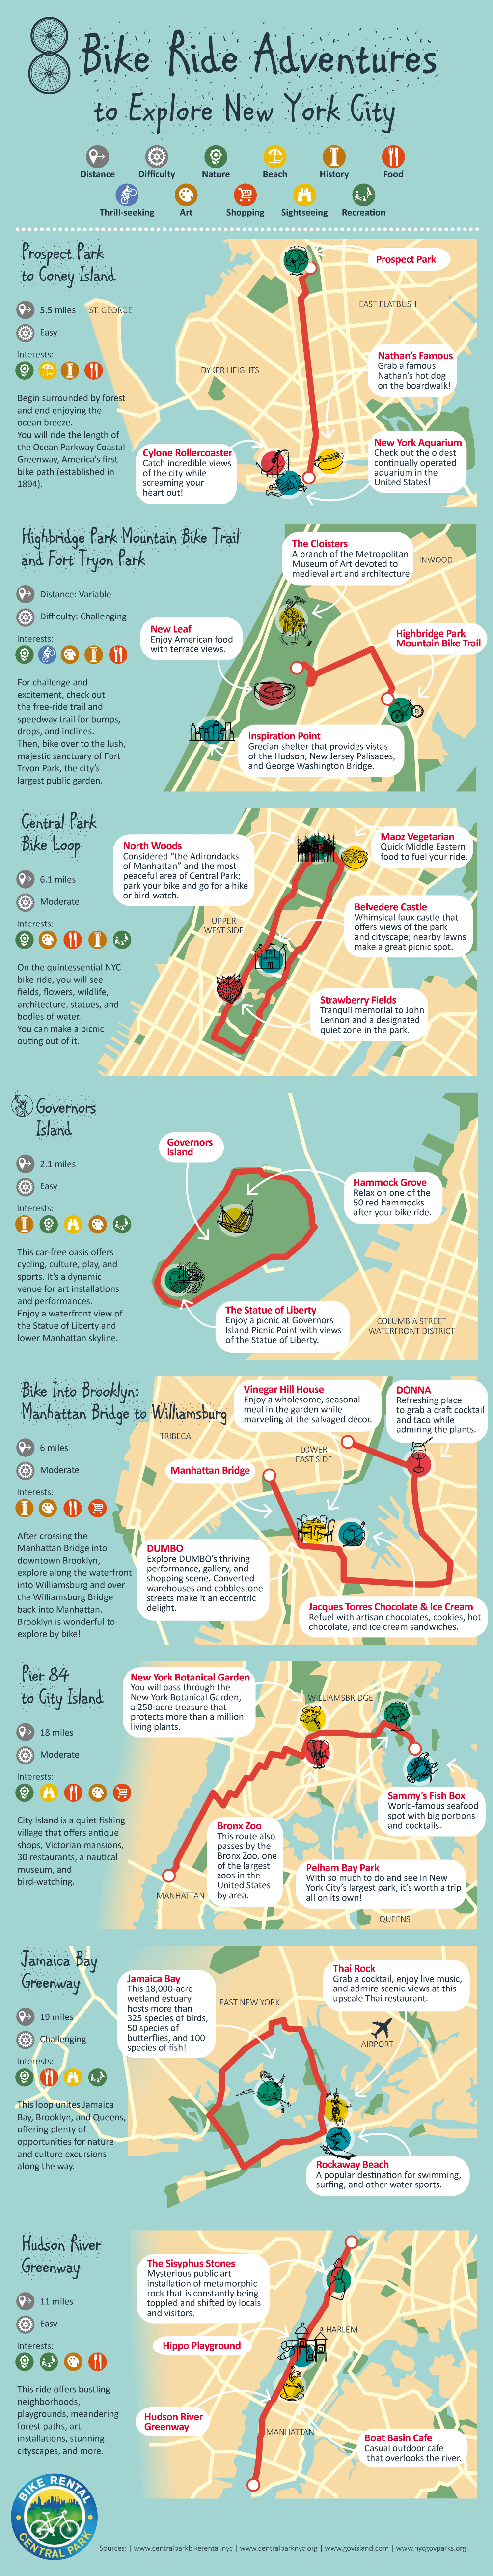 8 Bike Ride Adventures to Explore New York City - CentralParkBikeRental.nyc - Infographic - https://centralparkbikerental.nyc - Infographic